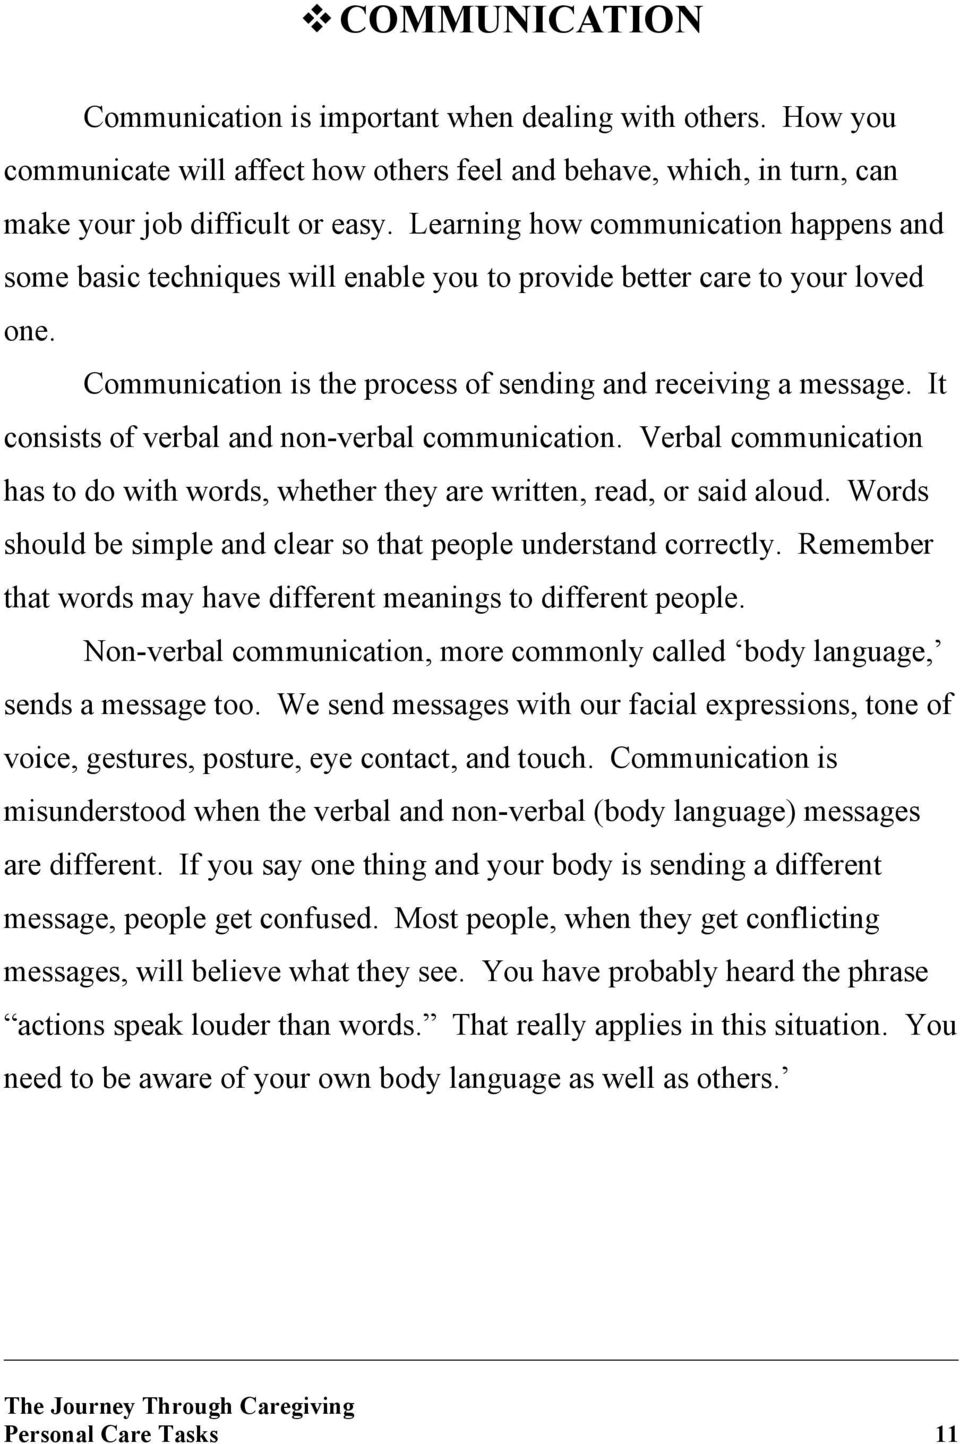 It consists of verbal and non-verbal communication. Verbal communication has to do with words, whether they are written, read, or said aloud.